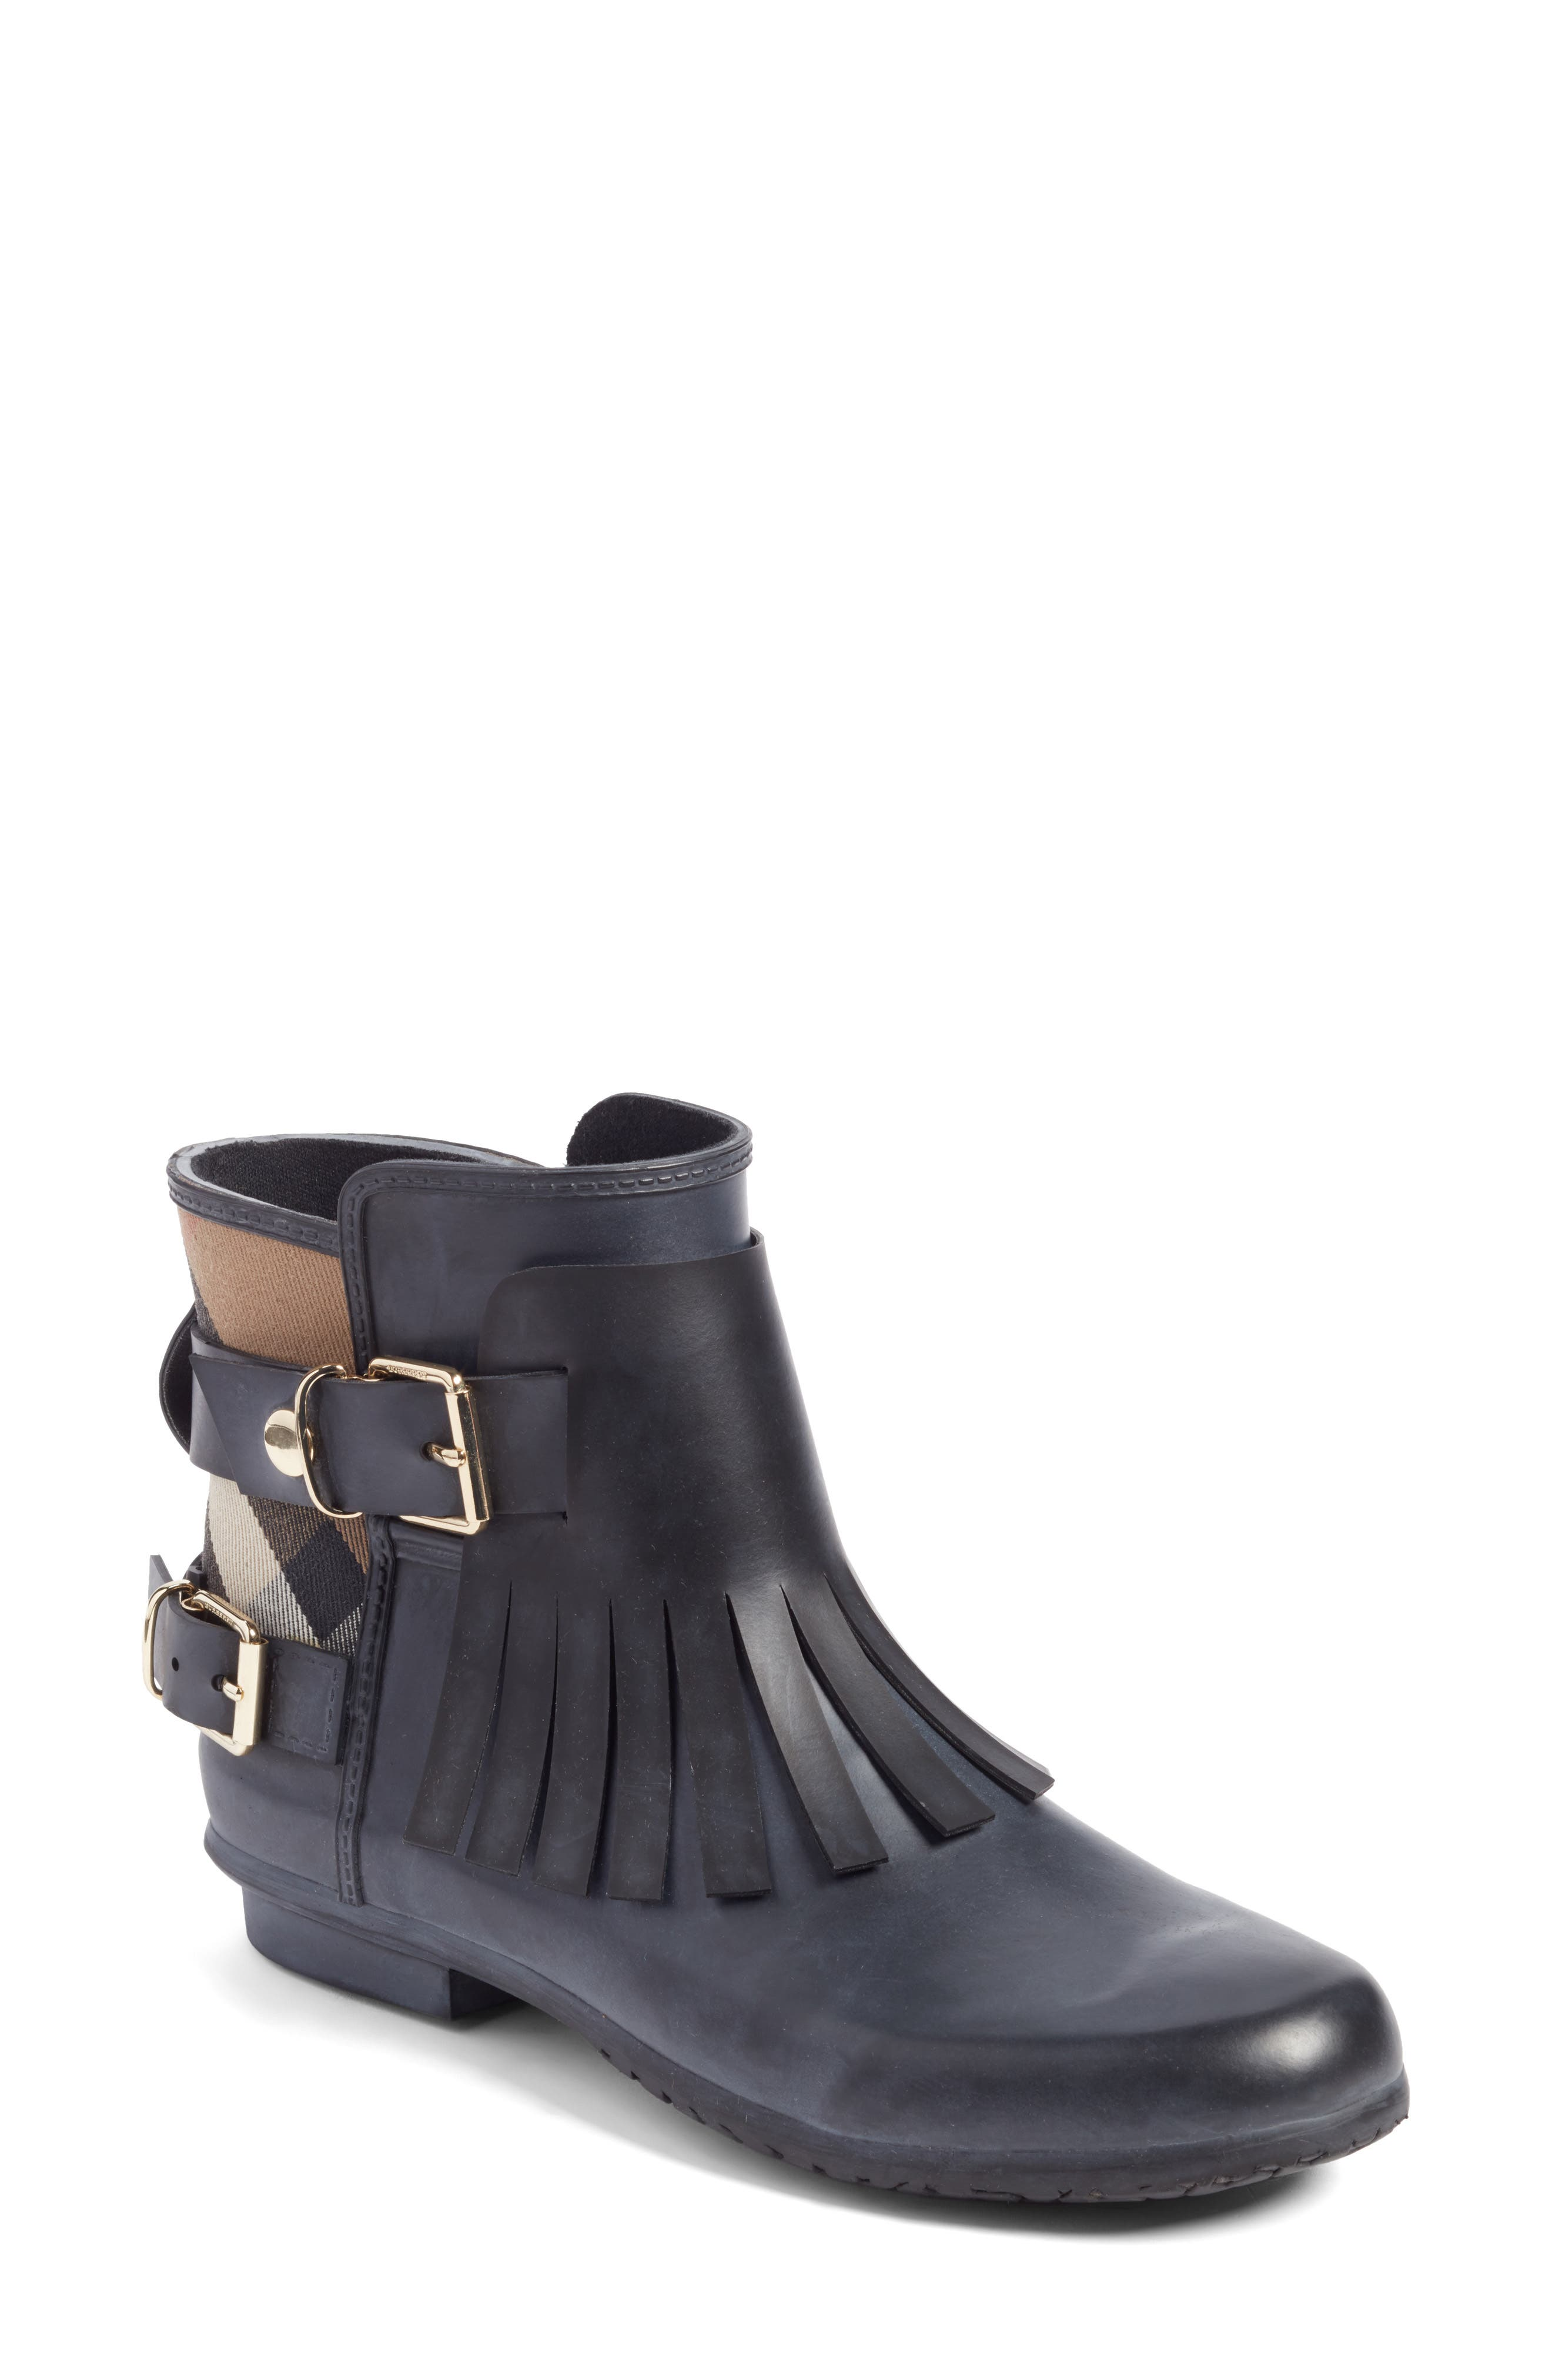 Alternate Image 1 Selected - Burberry Fringe Short Rain Bootie (Women)